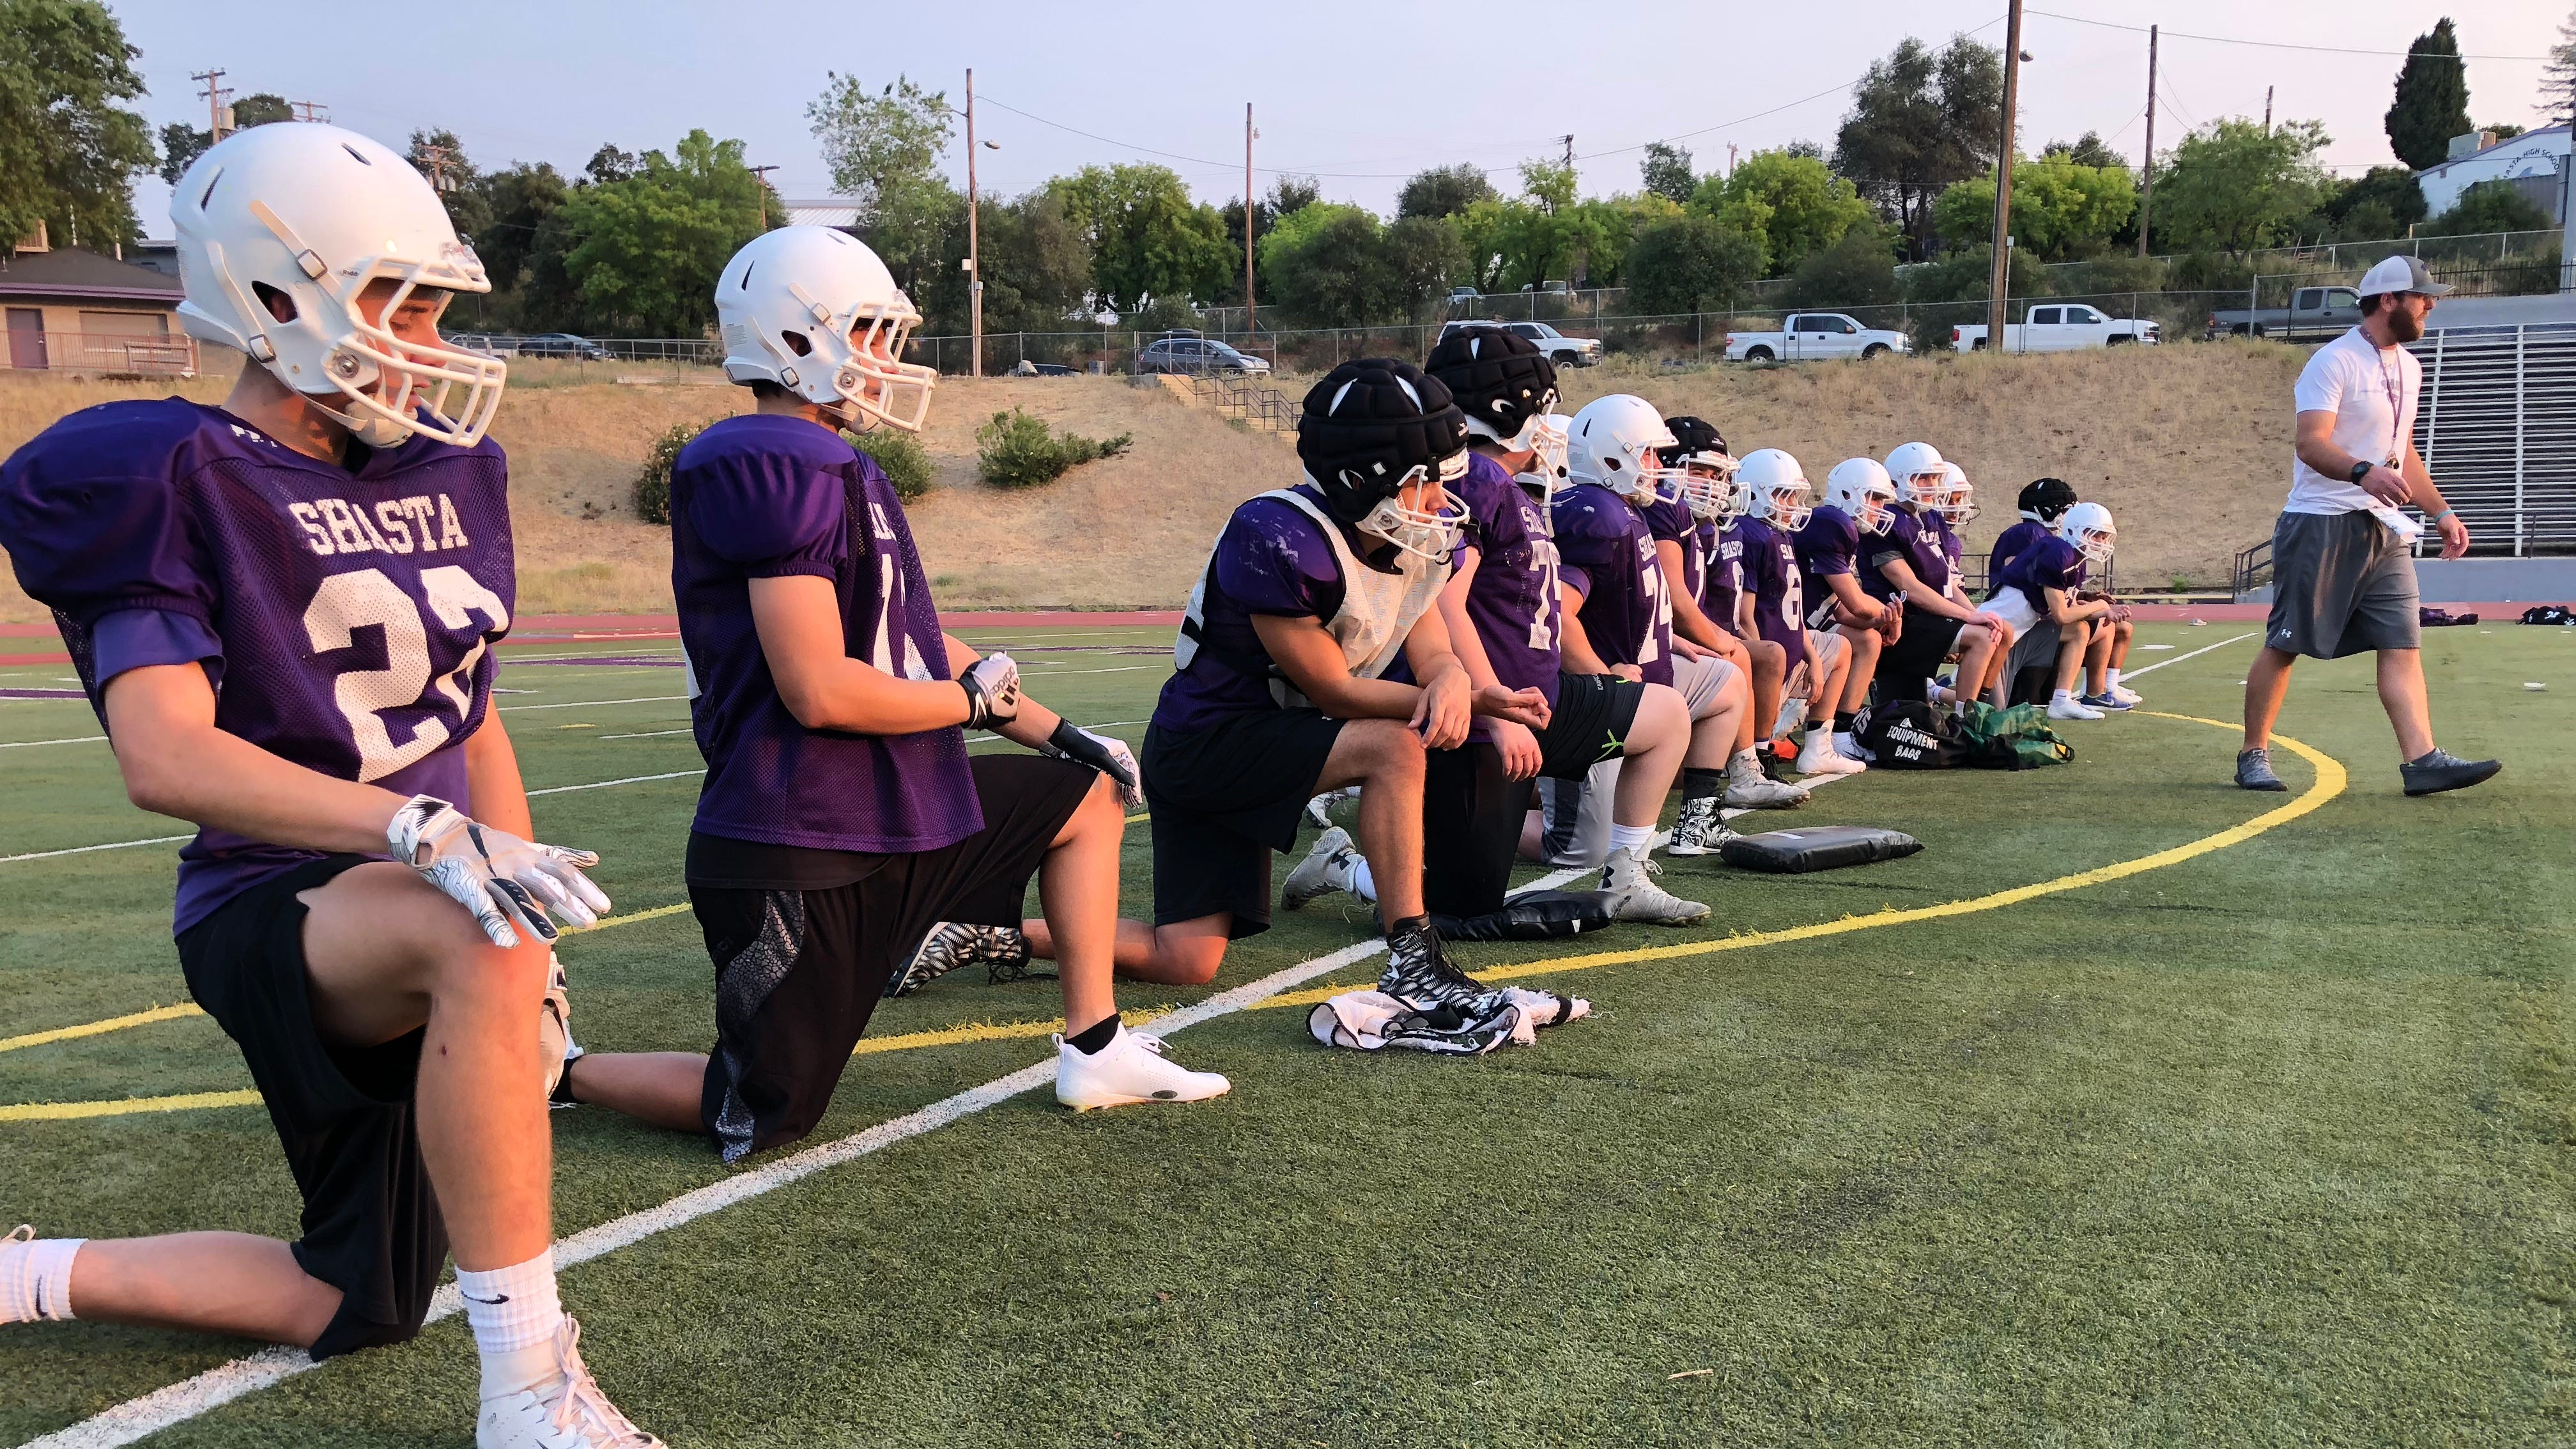 The Shasta High Wolves varsity football team practices outdoors for the first time this fall on Monday, Aug. 13.